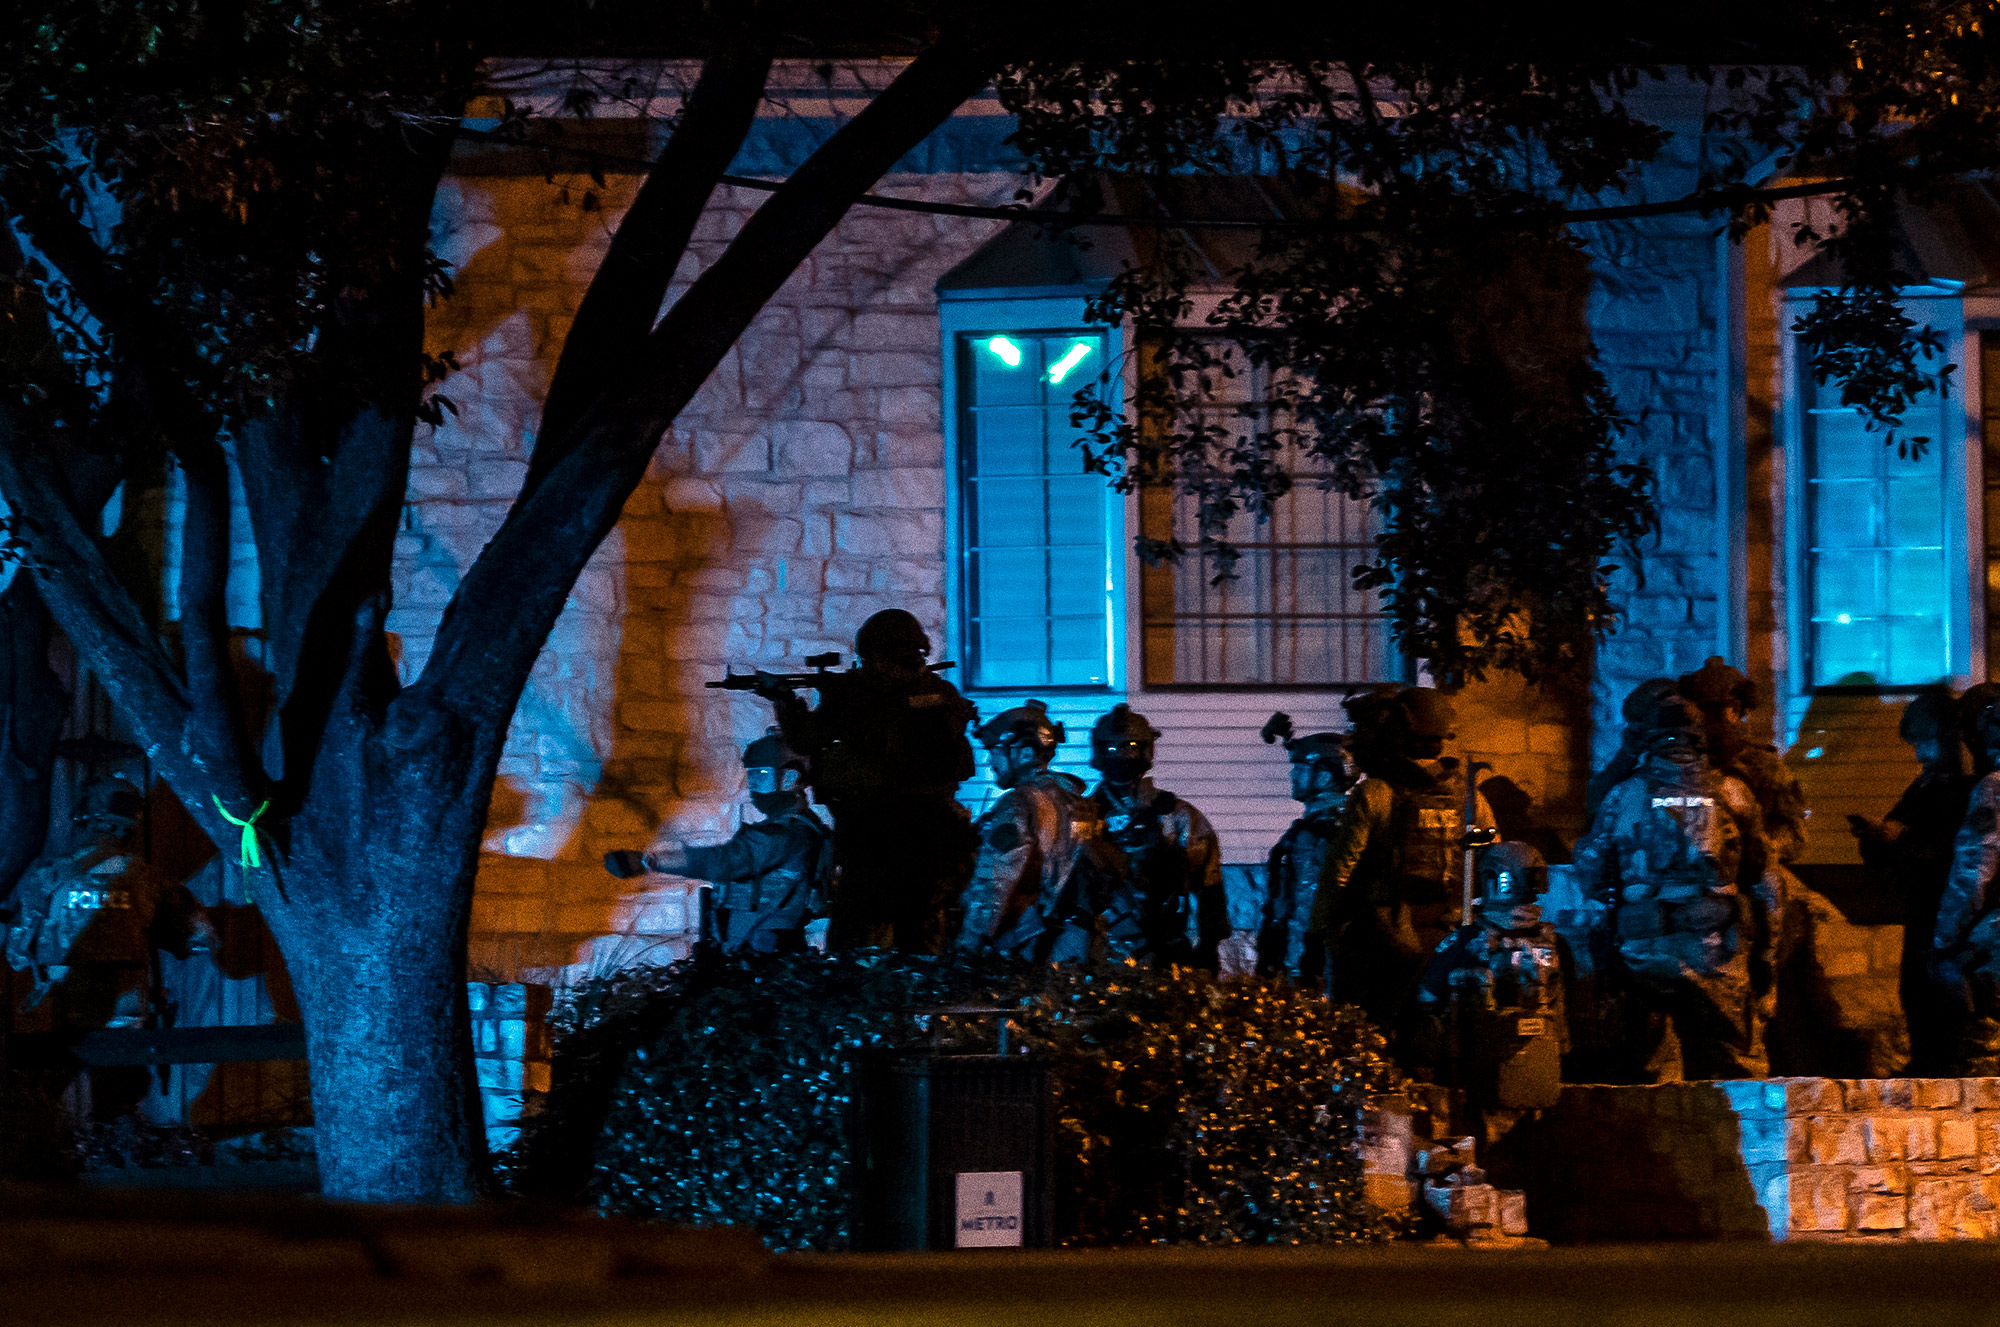 Pediatrician fatally shoots another doctor and himself during hostage situation in Austin, Texas, police say